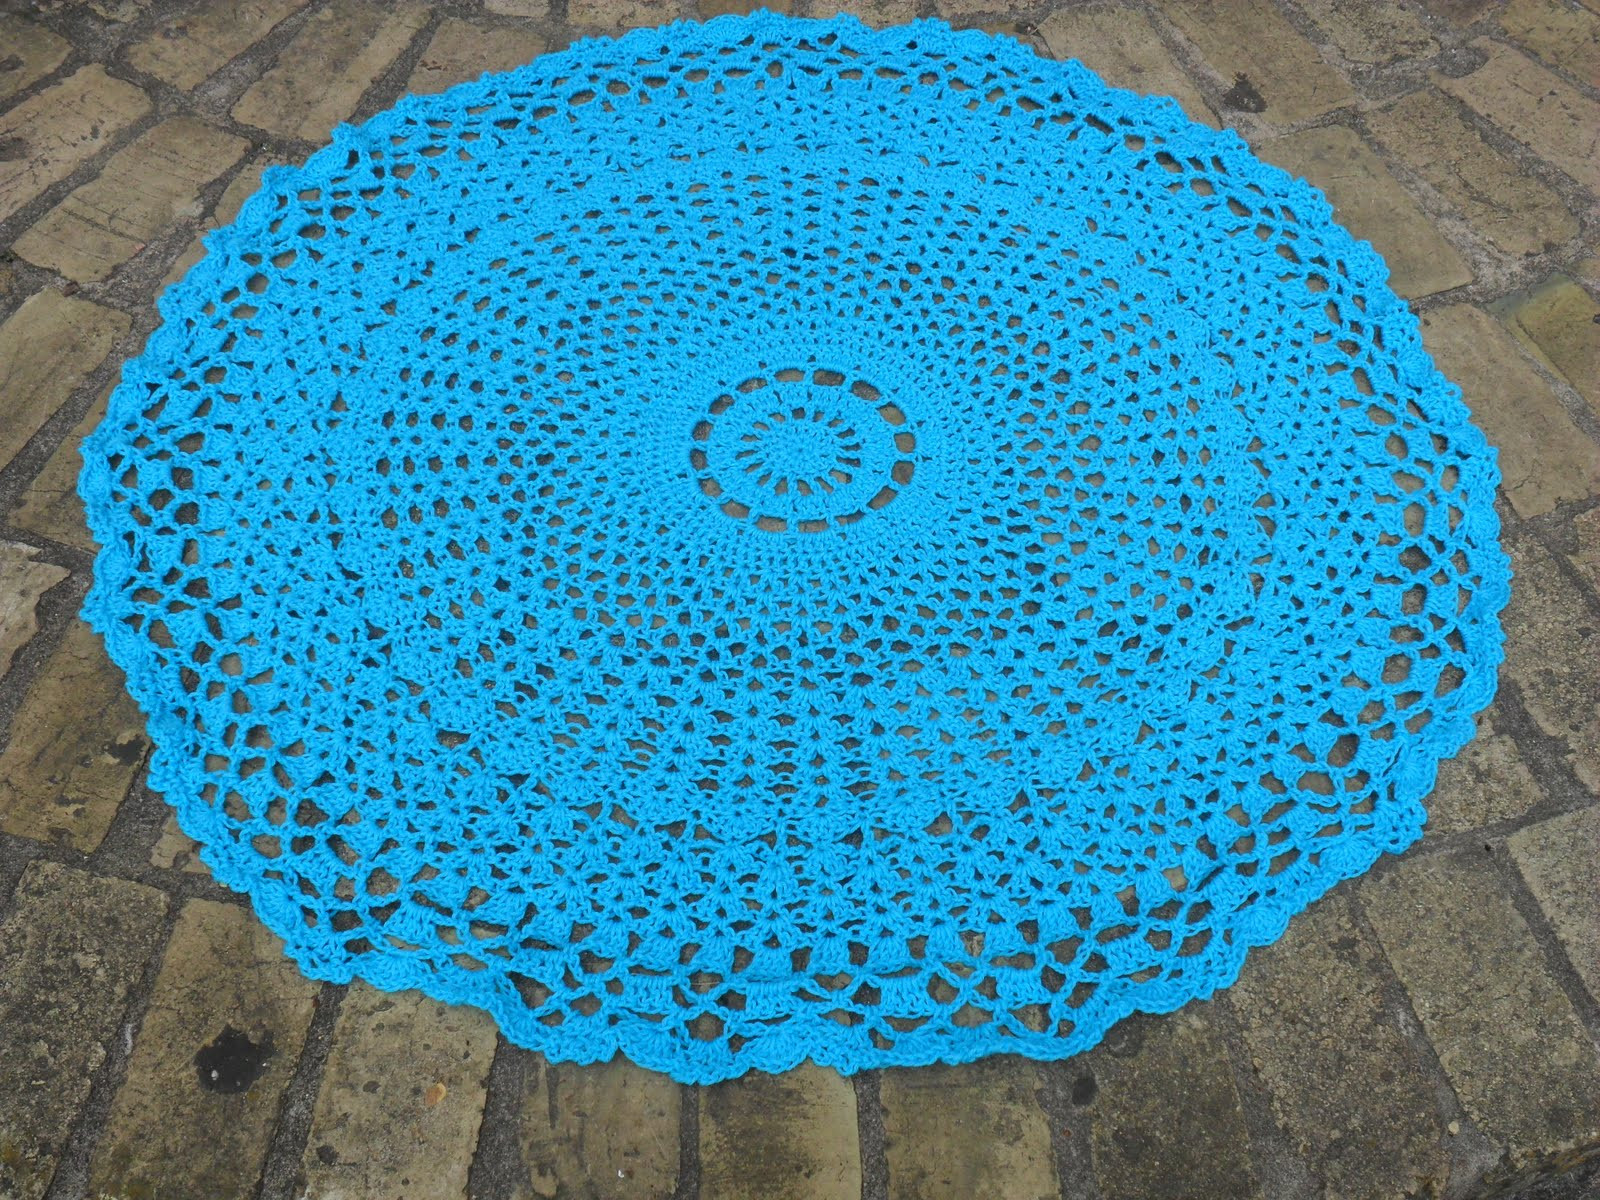 Crochet In the Round Lovely Valis Crochet Moment New Pattern for Valis Circular Of Marvelous 44 Photos Crochet In the Round